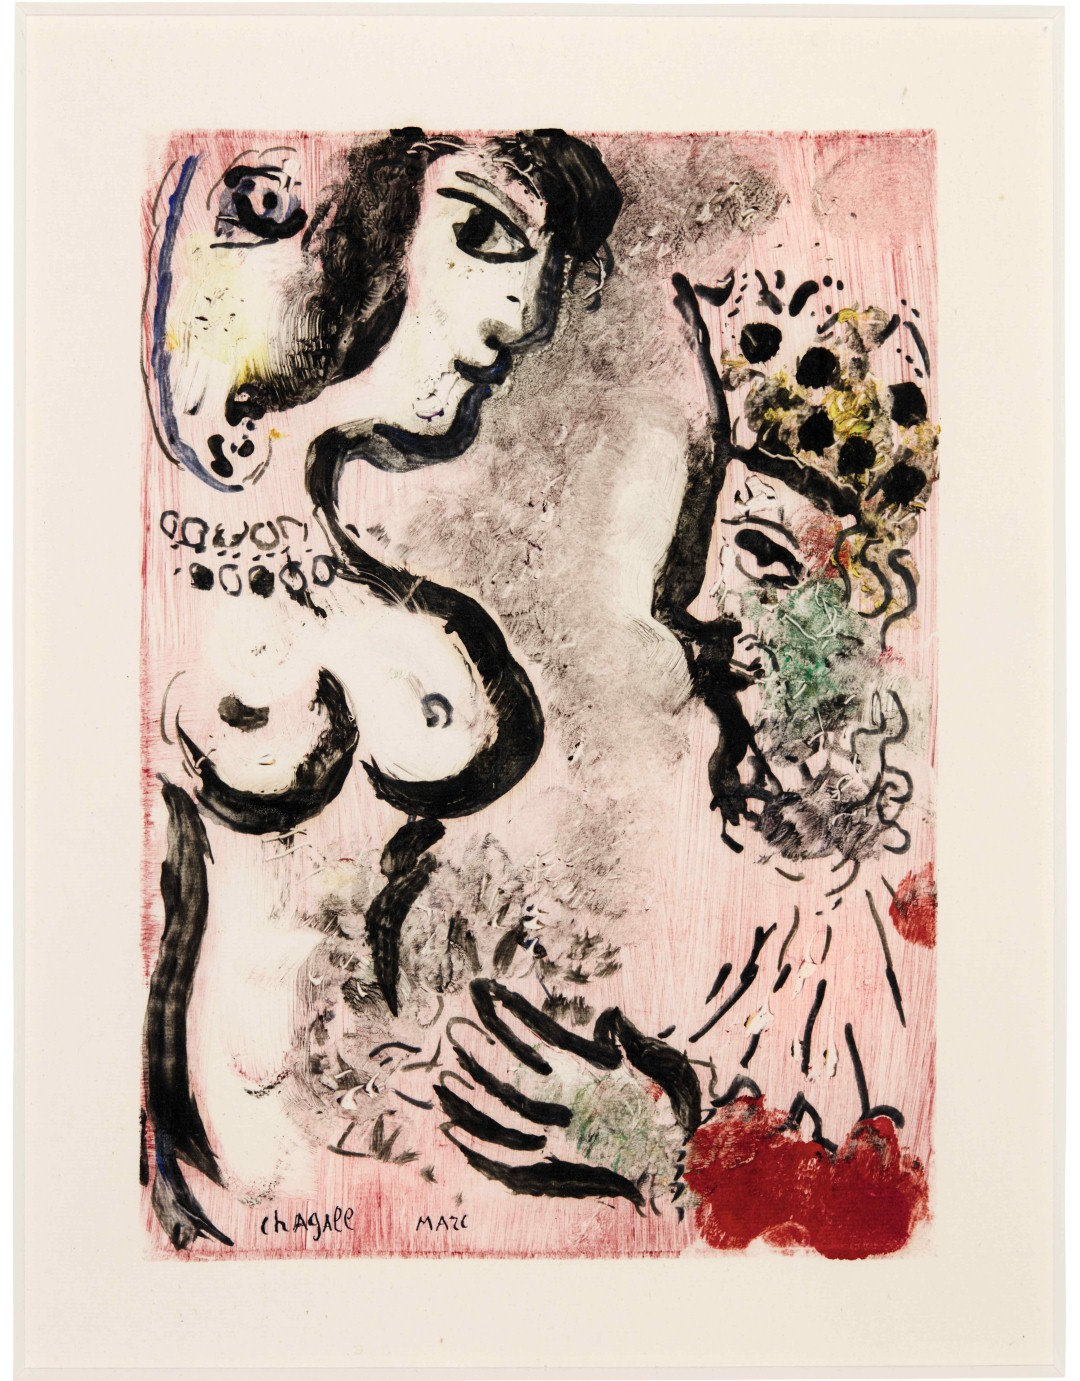 Marc Chagall. Le Bouffon, 1965, monotype, 38,5×30 cm